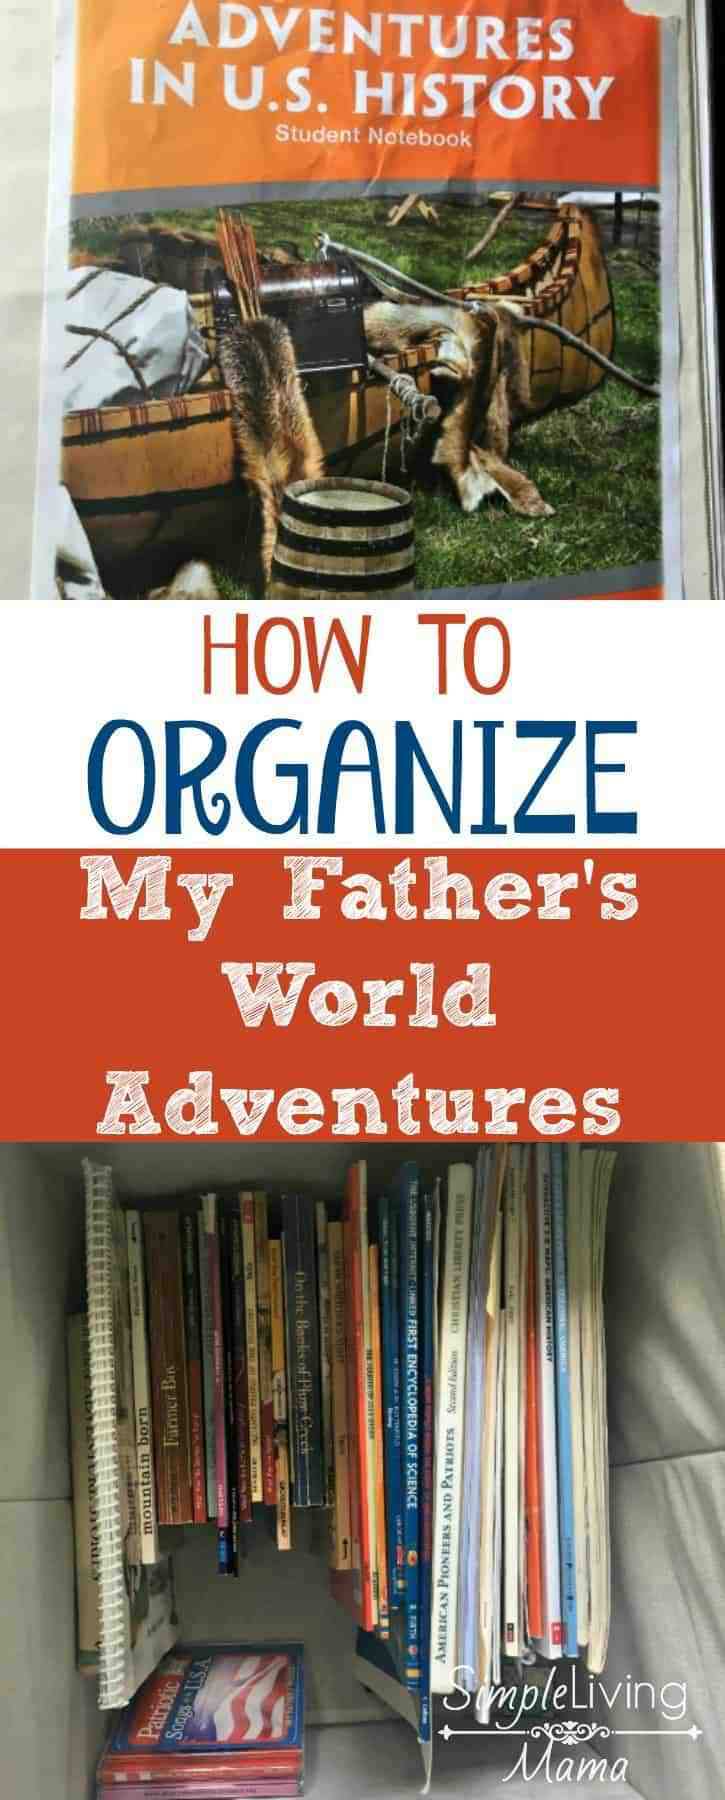 How To Organize My Father's World Adventures